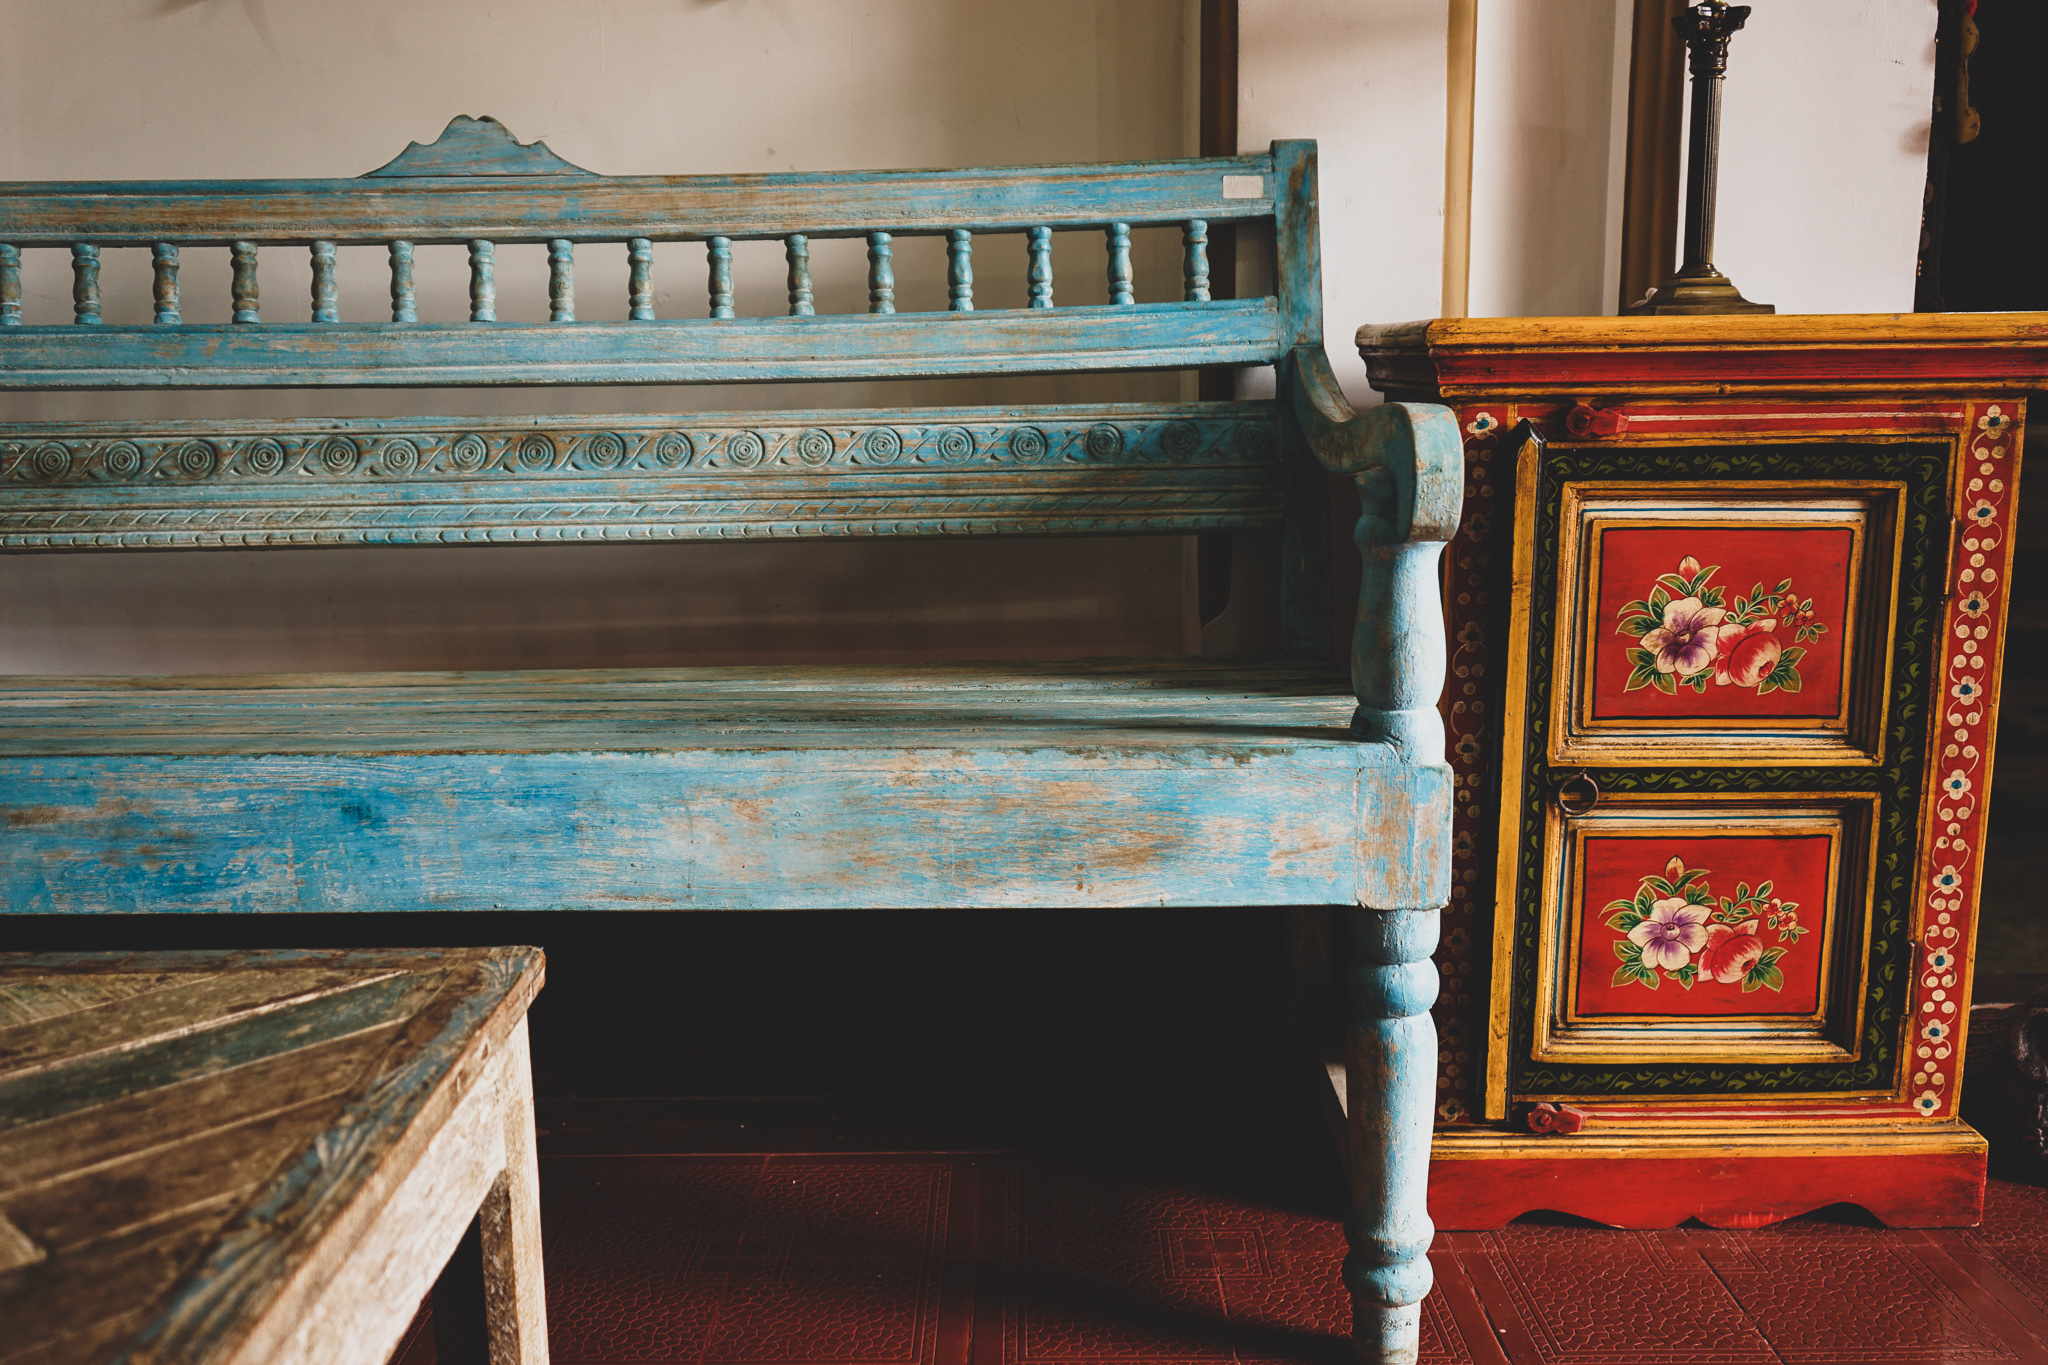 South Asian furniture